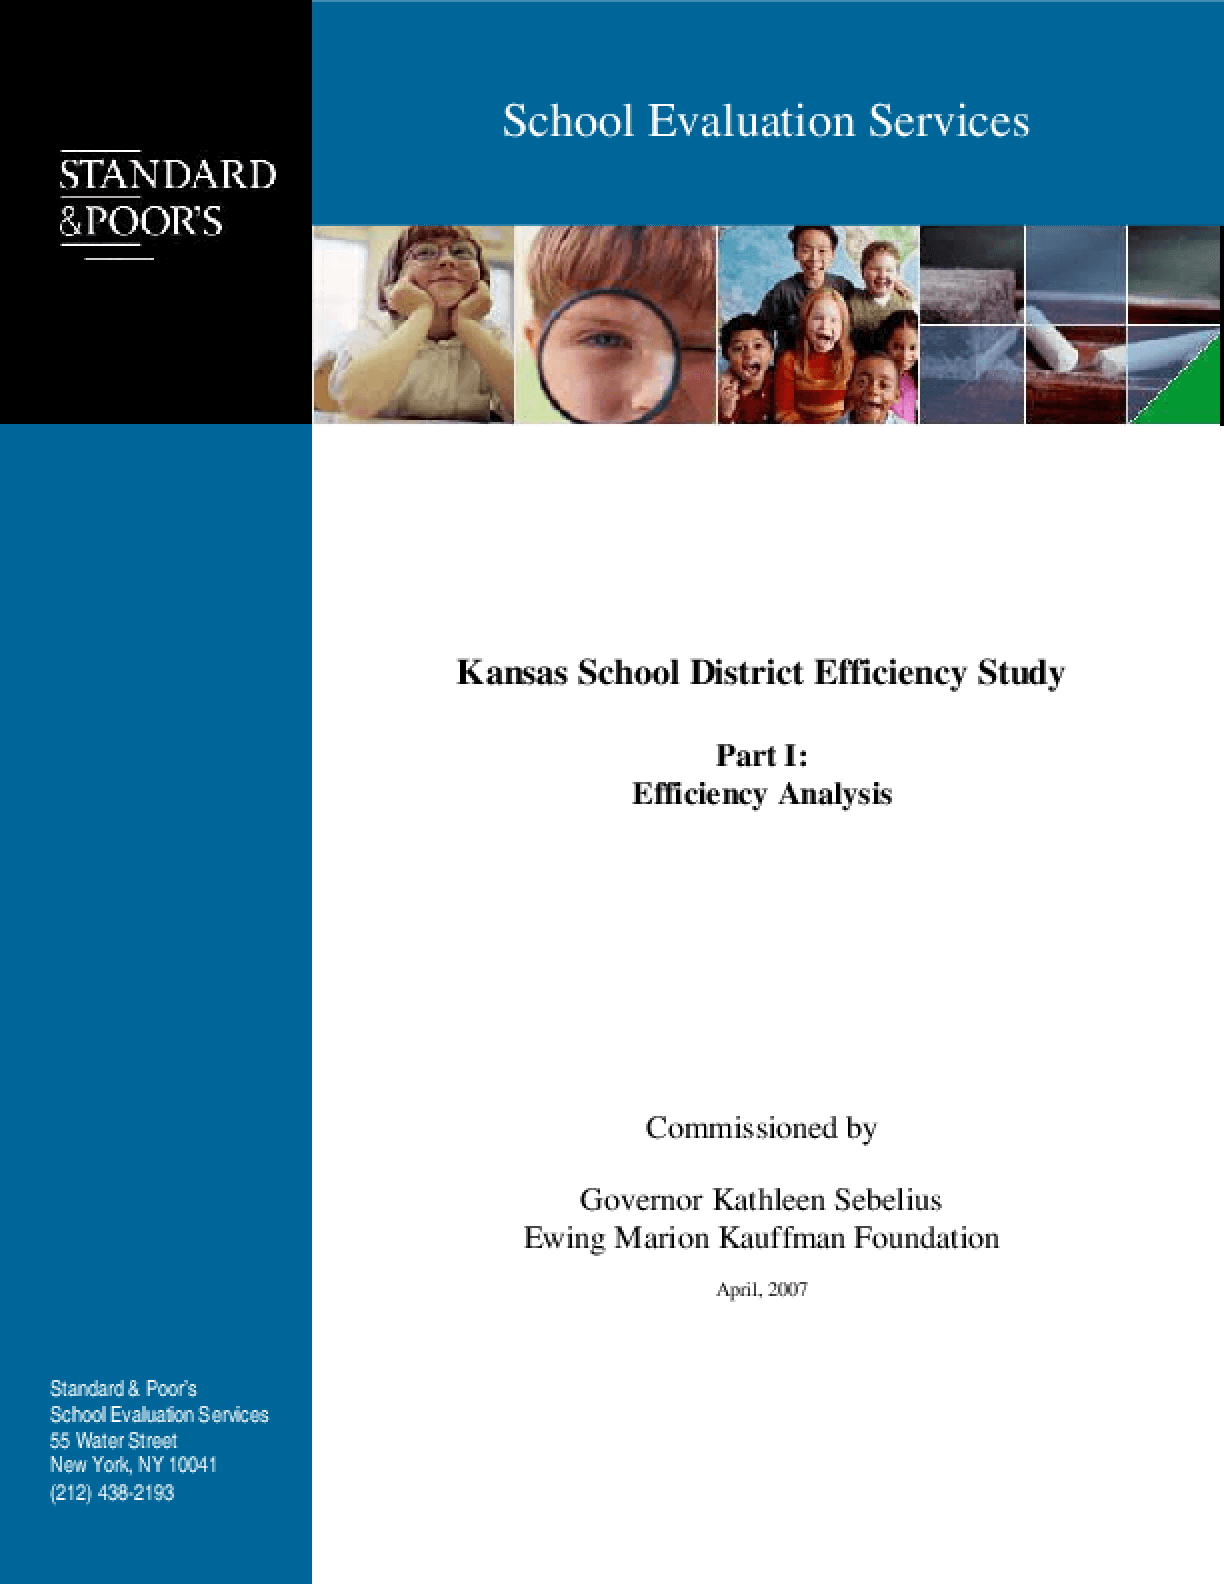 Kansas School District Efficiency Study Part I: Efficiency Analysis